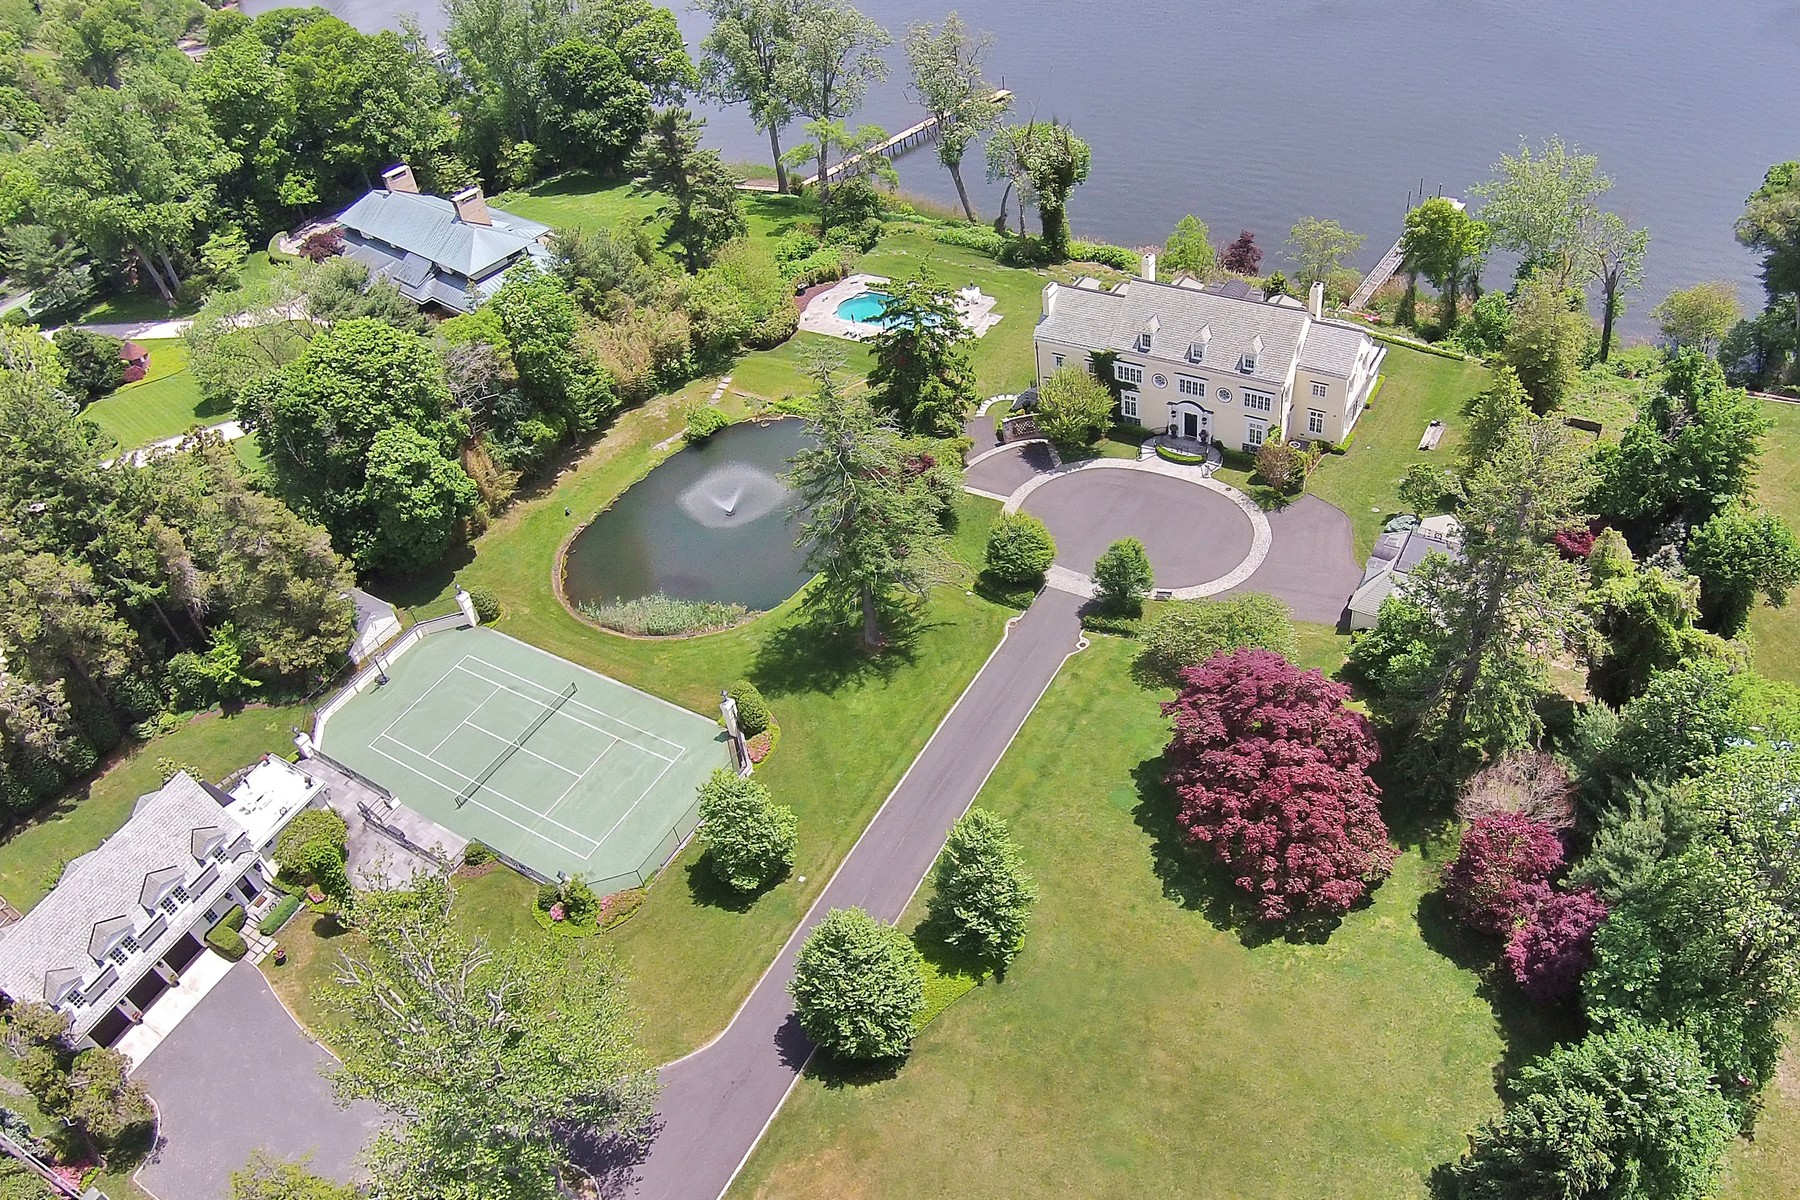 Single Family Home for Sale at PREMIER WATERFRONT - SPECTACULAR NEW PRICE 536 Navesink River Rd Middletown, New Jersey 07748 United States